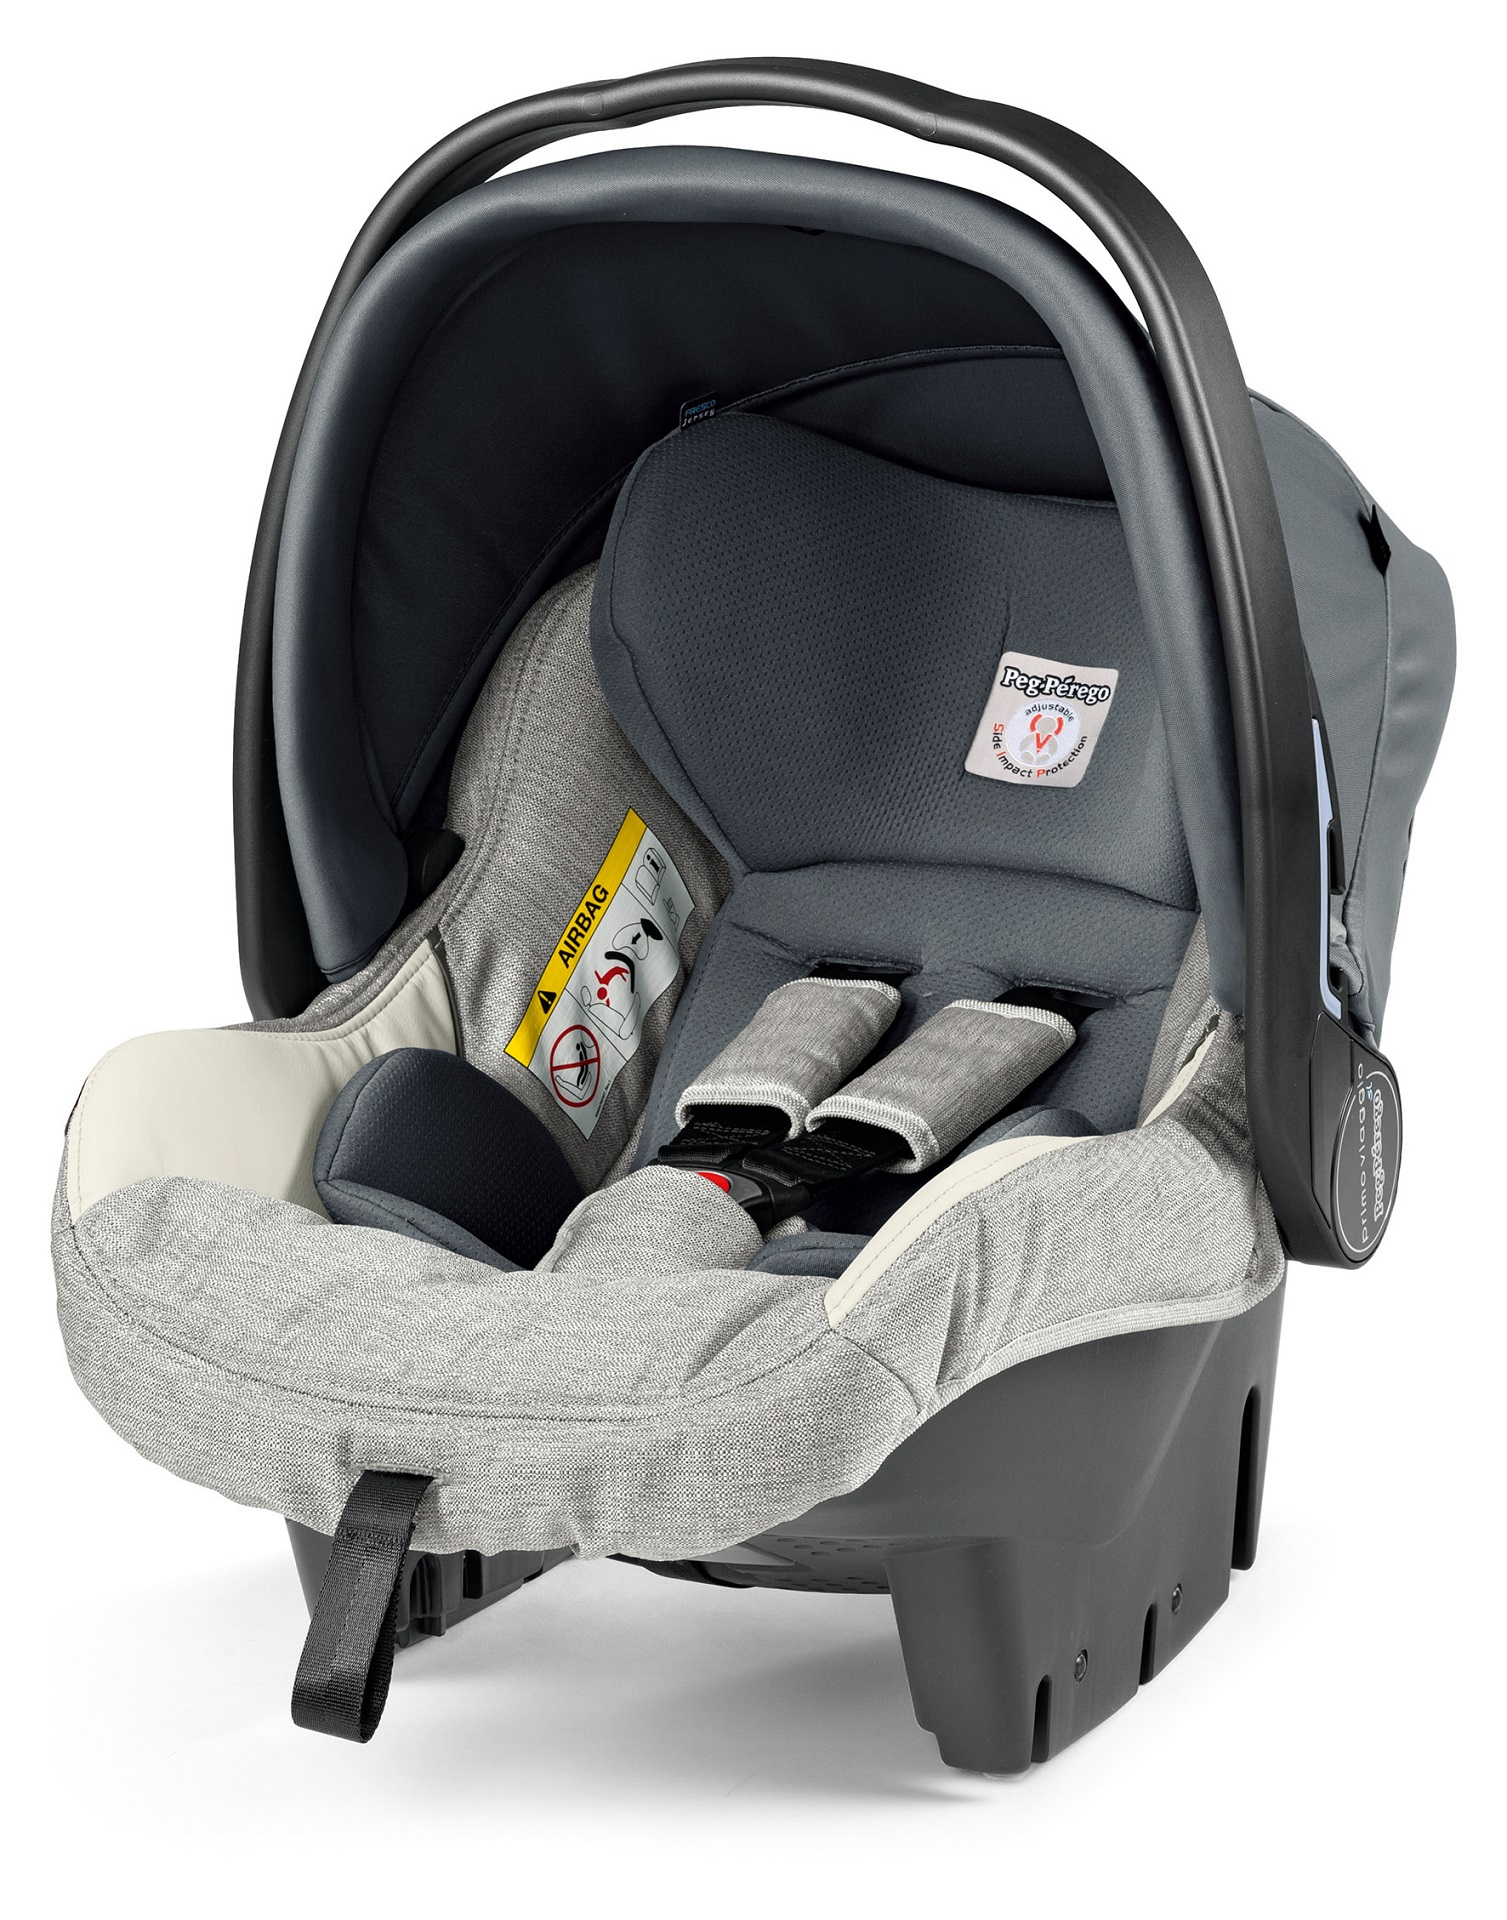 Peg-Perego Infant Car Seat Primo Viaggio SL 2018 Luxe Opal - Buy at ...